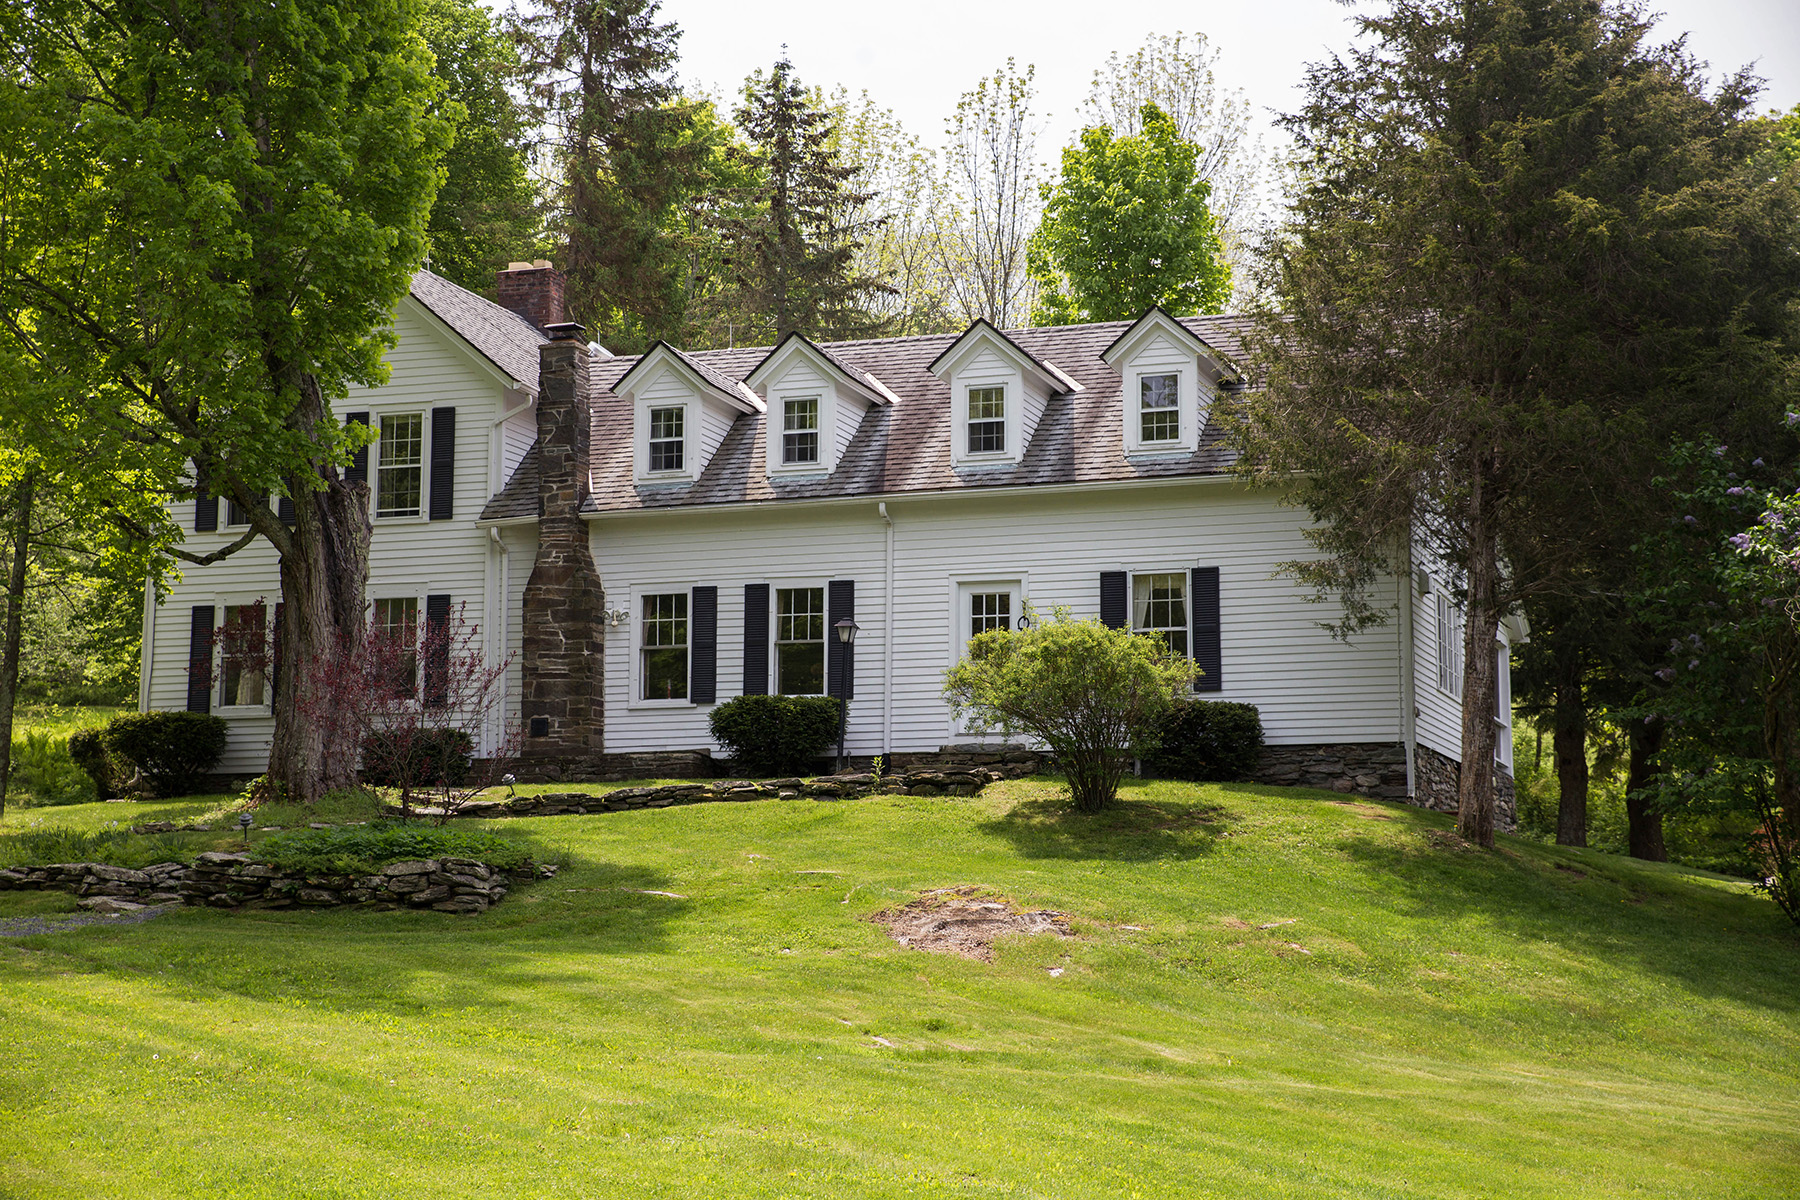 Maison unifamiliale pour l Vente à Butternut Farm 359a Mckie Hollow Rd Cambridge, New York 12816 États-Unis